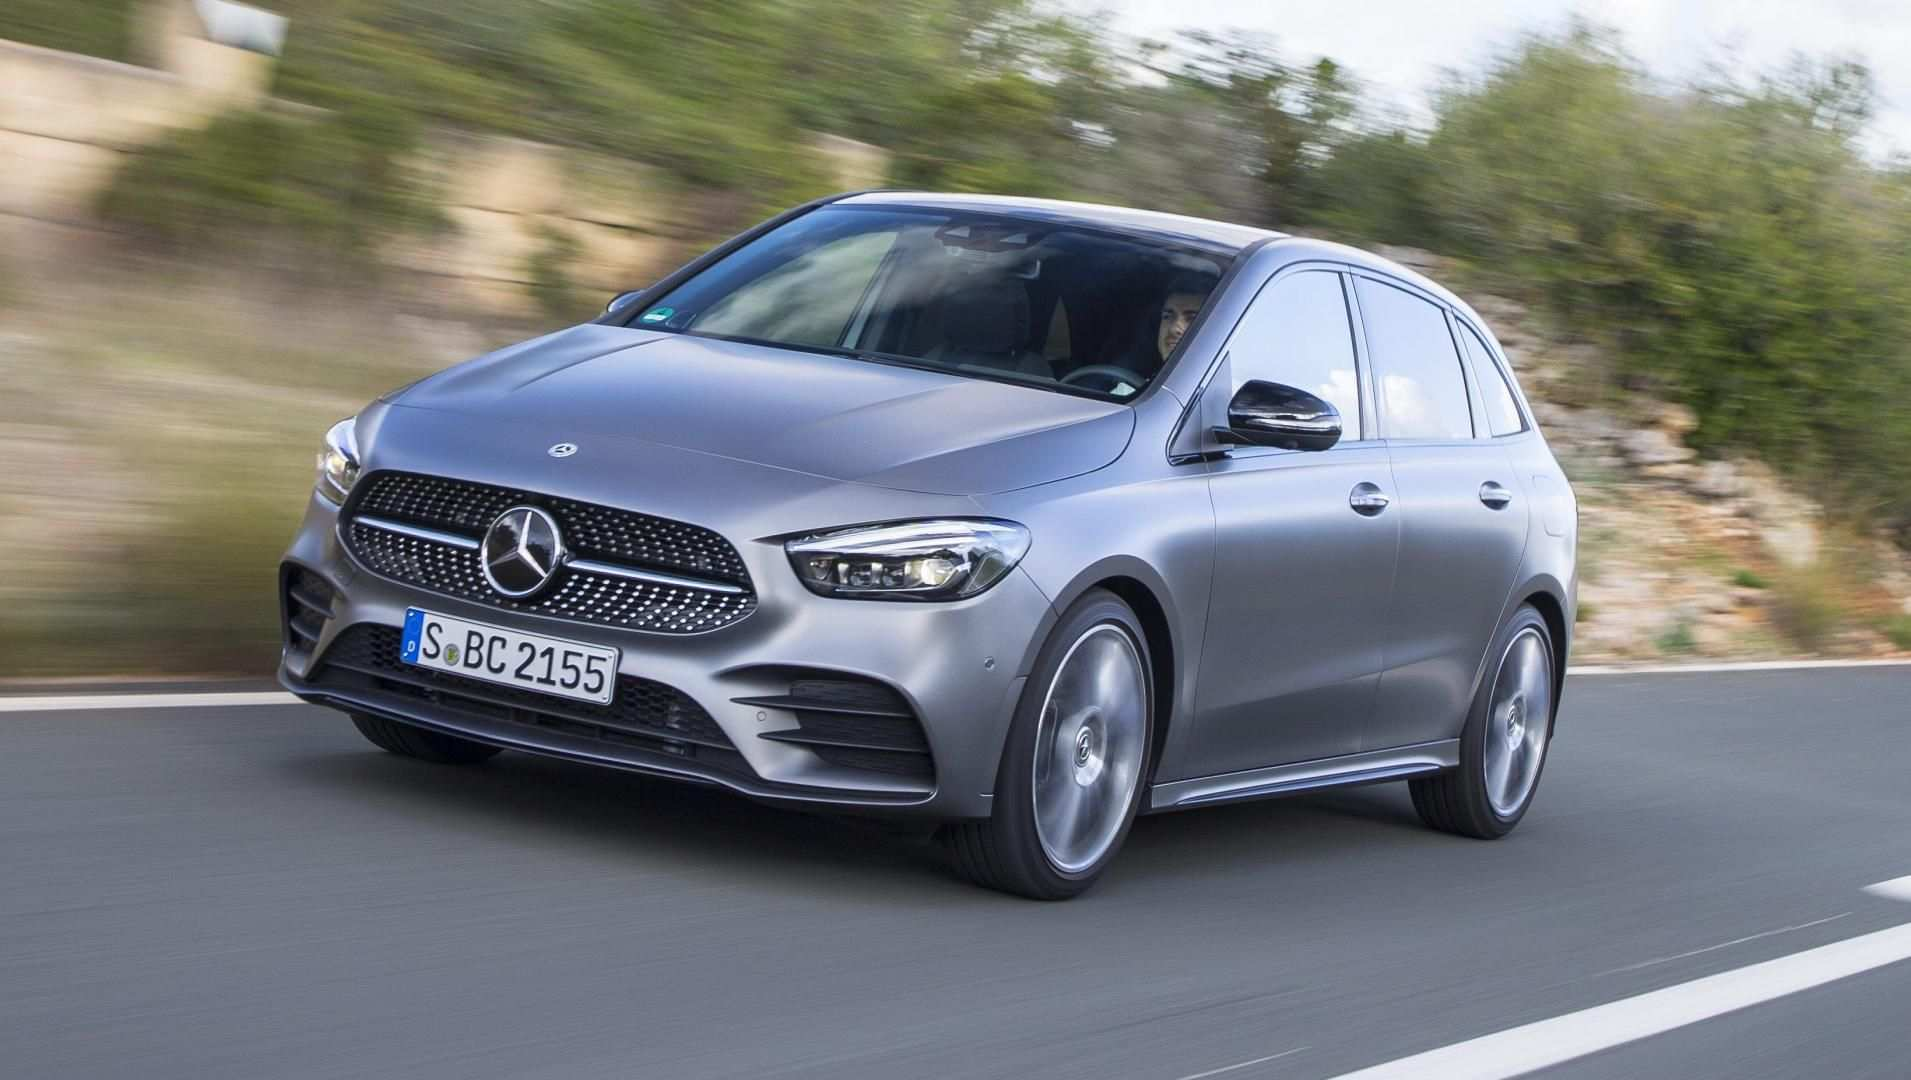 72 Concept of Best Mercedes Benz B Klasse 2019 Interior Exterior And Review Photos with Best Mercedes Benz B Klasse 2019 Interior Exterior And Review